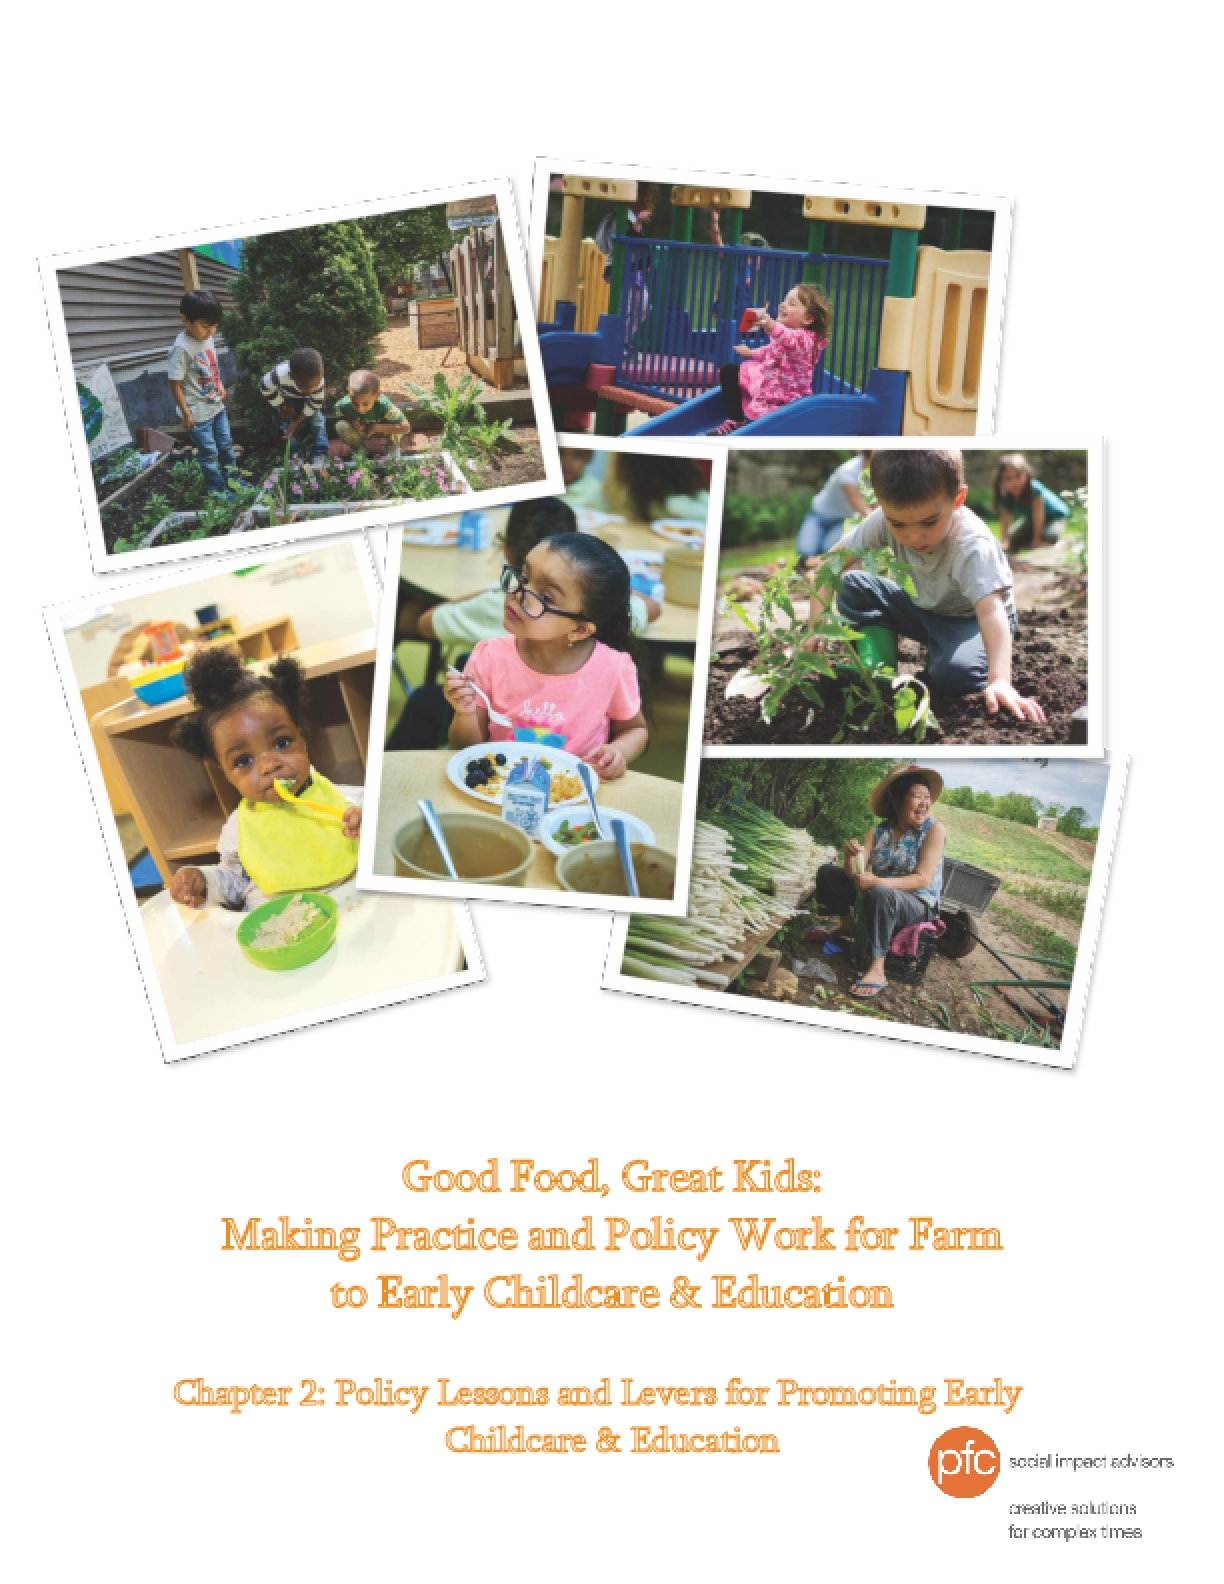 Good Food, Great Kids: Making Practice and Policy Work for Farm to Early Childcare & Education